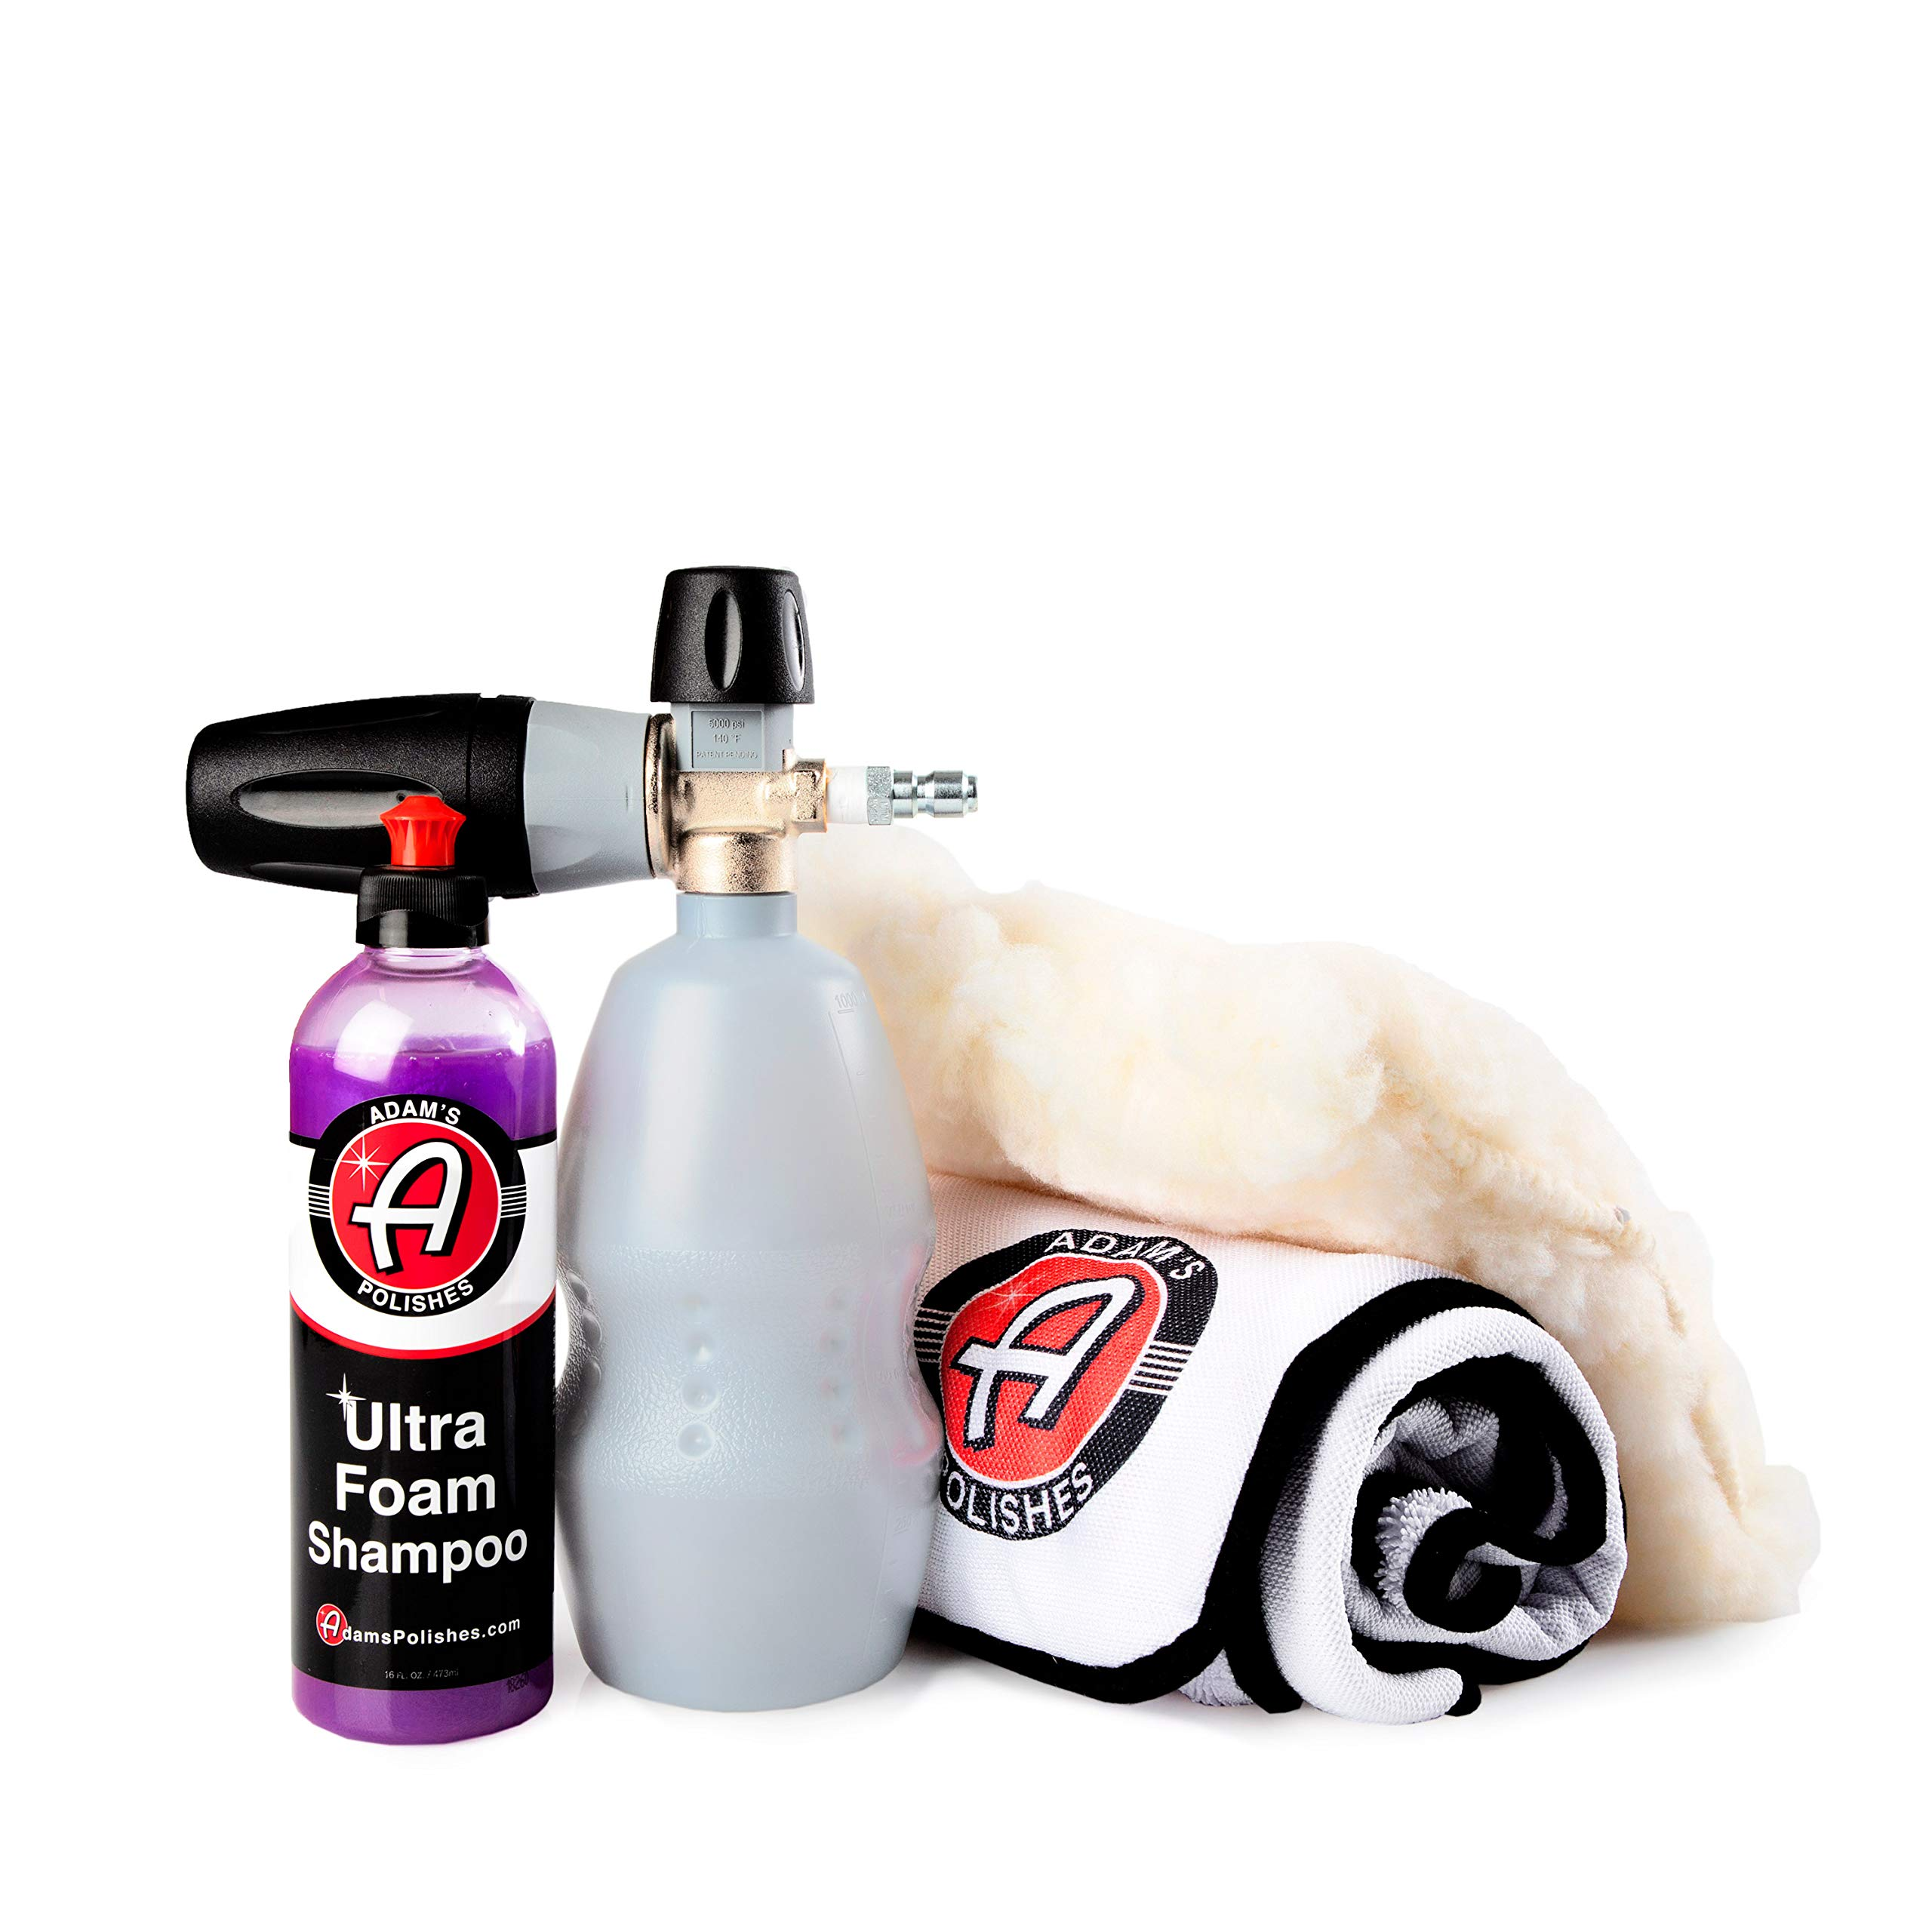 Adam's MTM Premium Foam Cannon Professional Foam Lance PF22 - Premium, Professional Grade Snow Foam Cannon Creates Thick Suds for Safe Washing - Attaches to Pressure Washer (Ultra Cannon Kit)